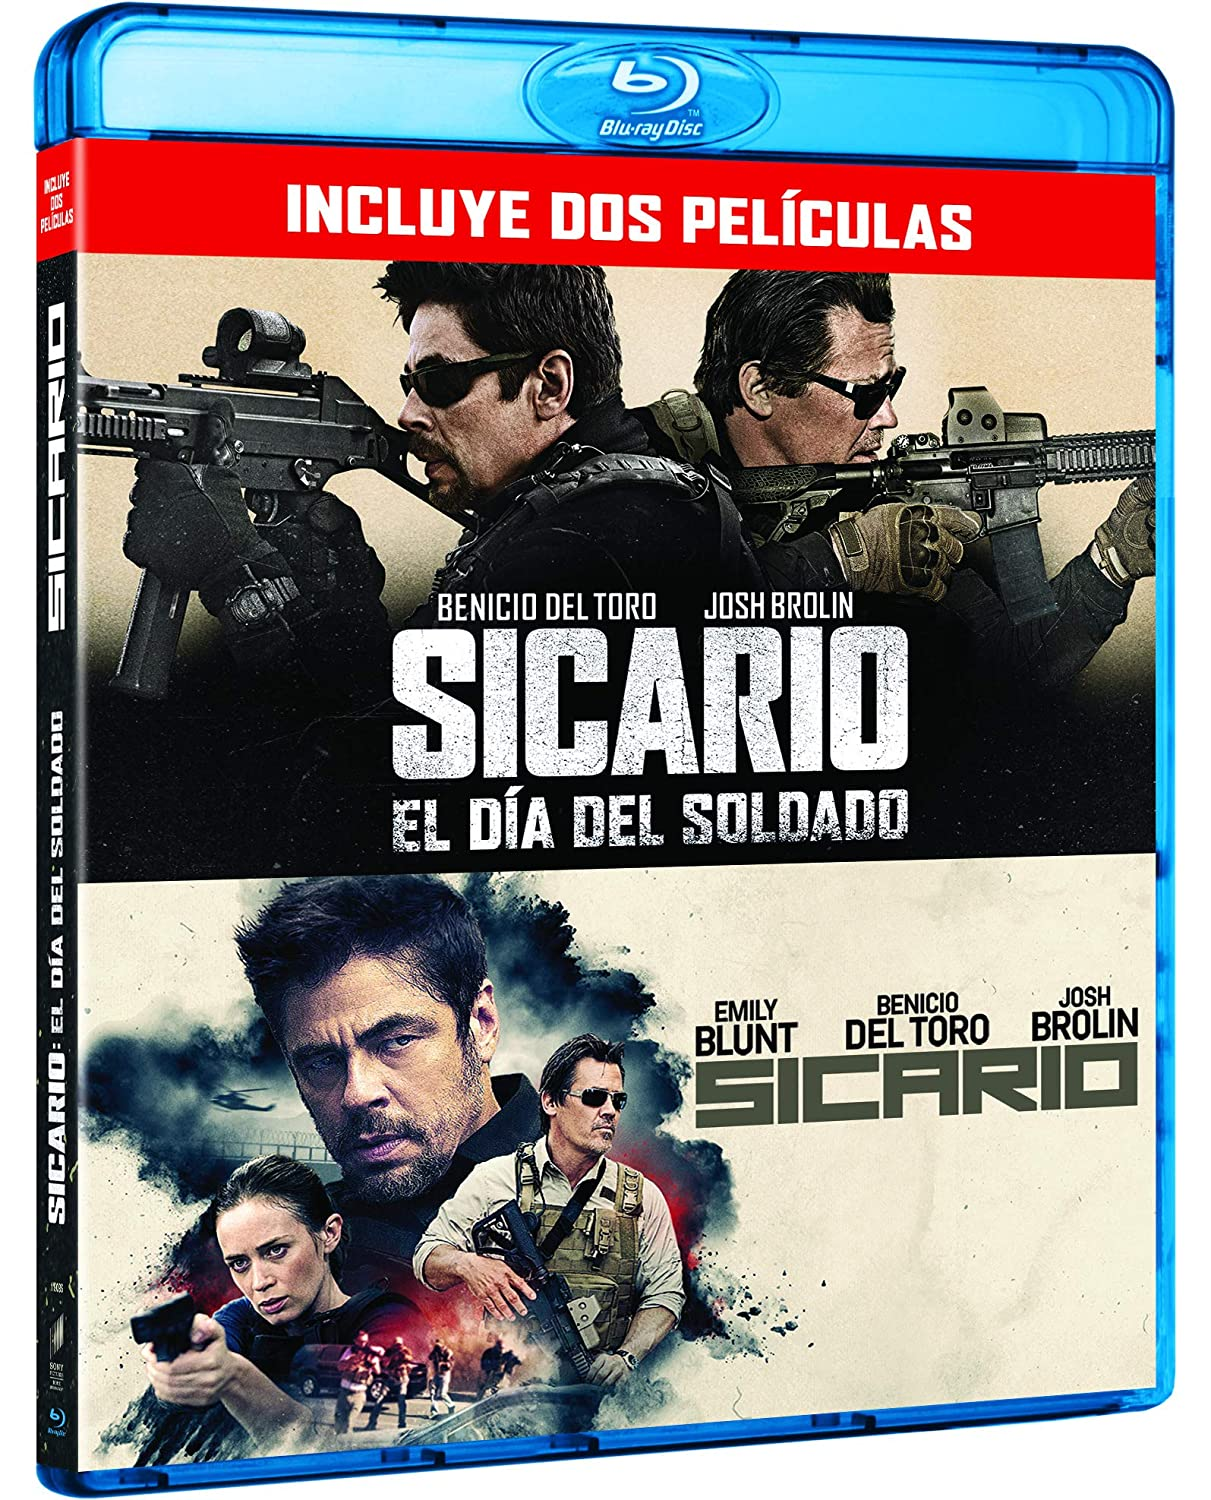 Pack: Sicario 1 + Sicario 2 [Blu-ray]: Amazon.es: Benicio Del Toro, Josh Brolin, Isabela Moner, Stefano Sollima, Benicio Del Toro, Josh Brolin, Black Label Media, Thunder Road Pictures: Cine y Series TV